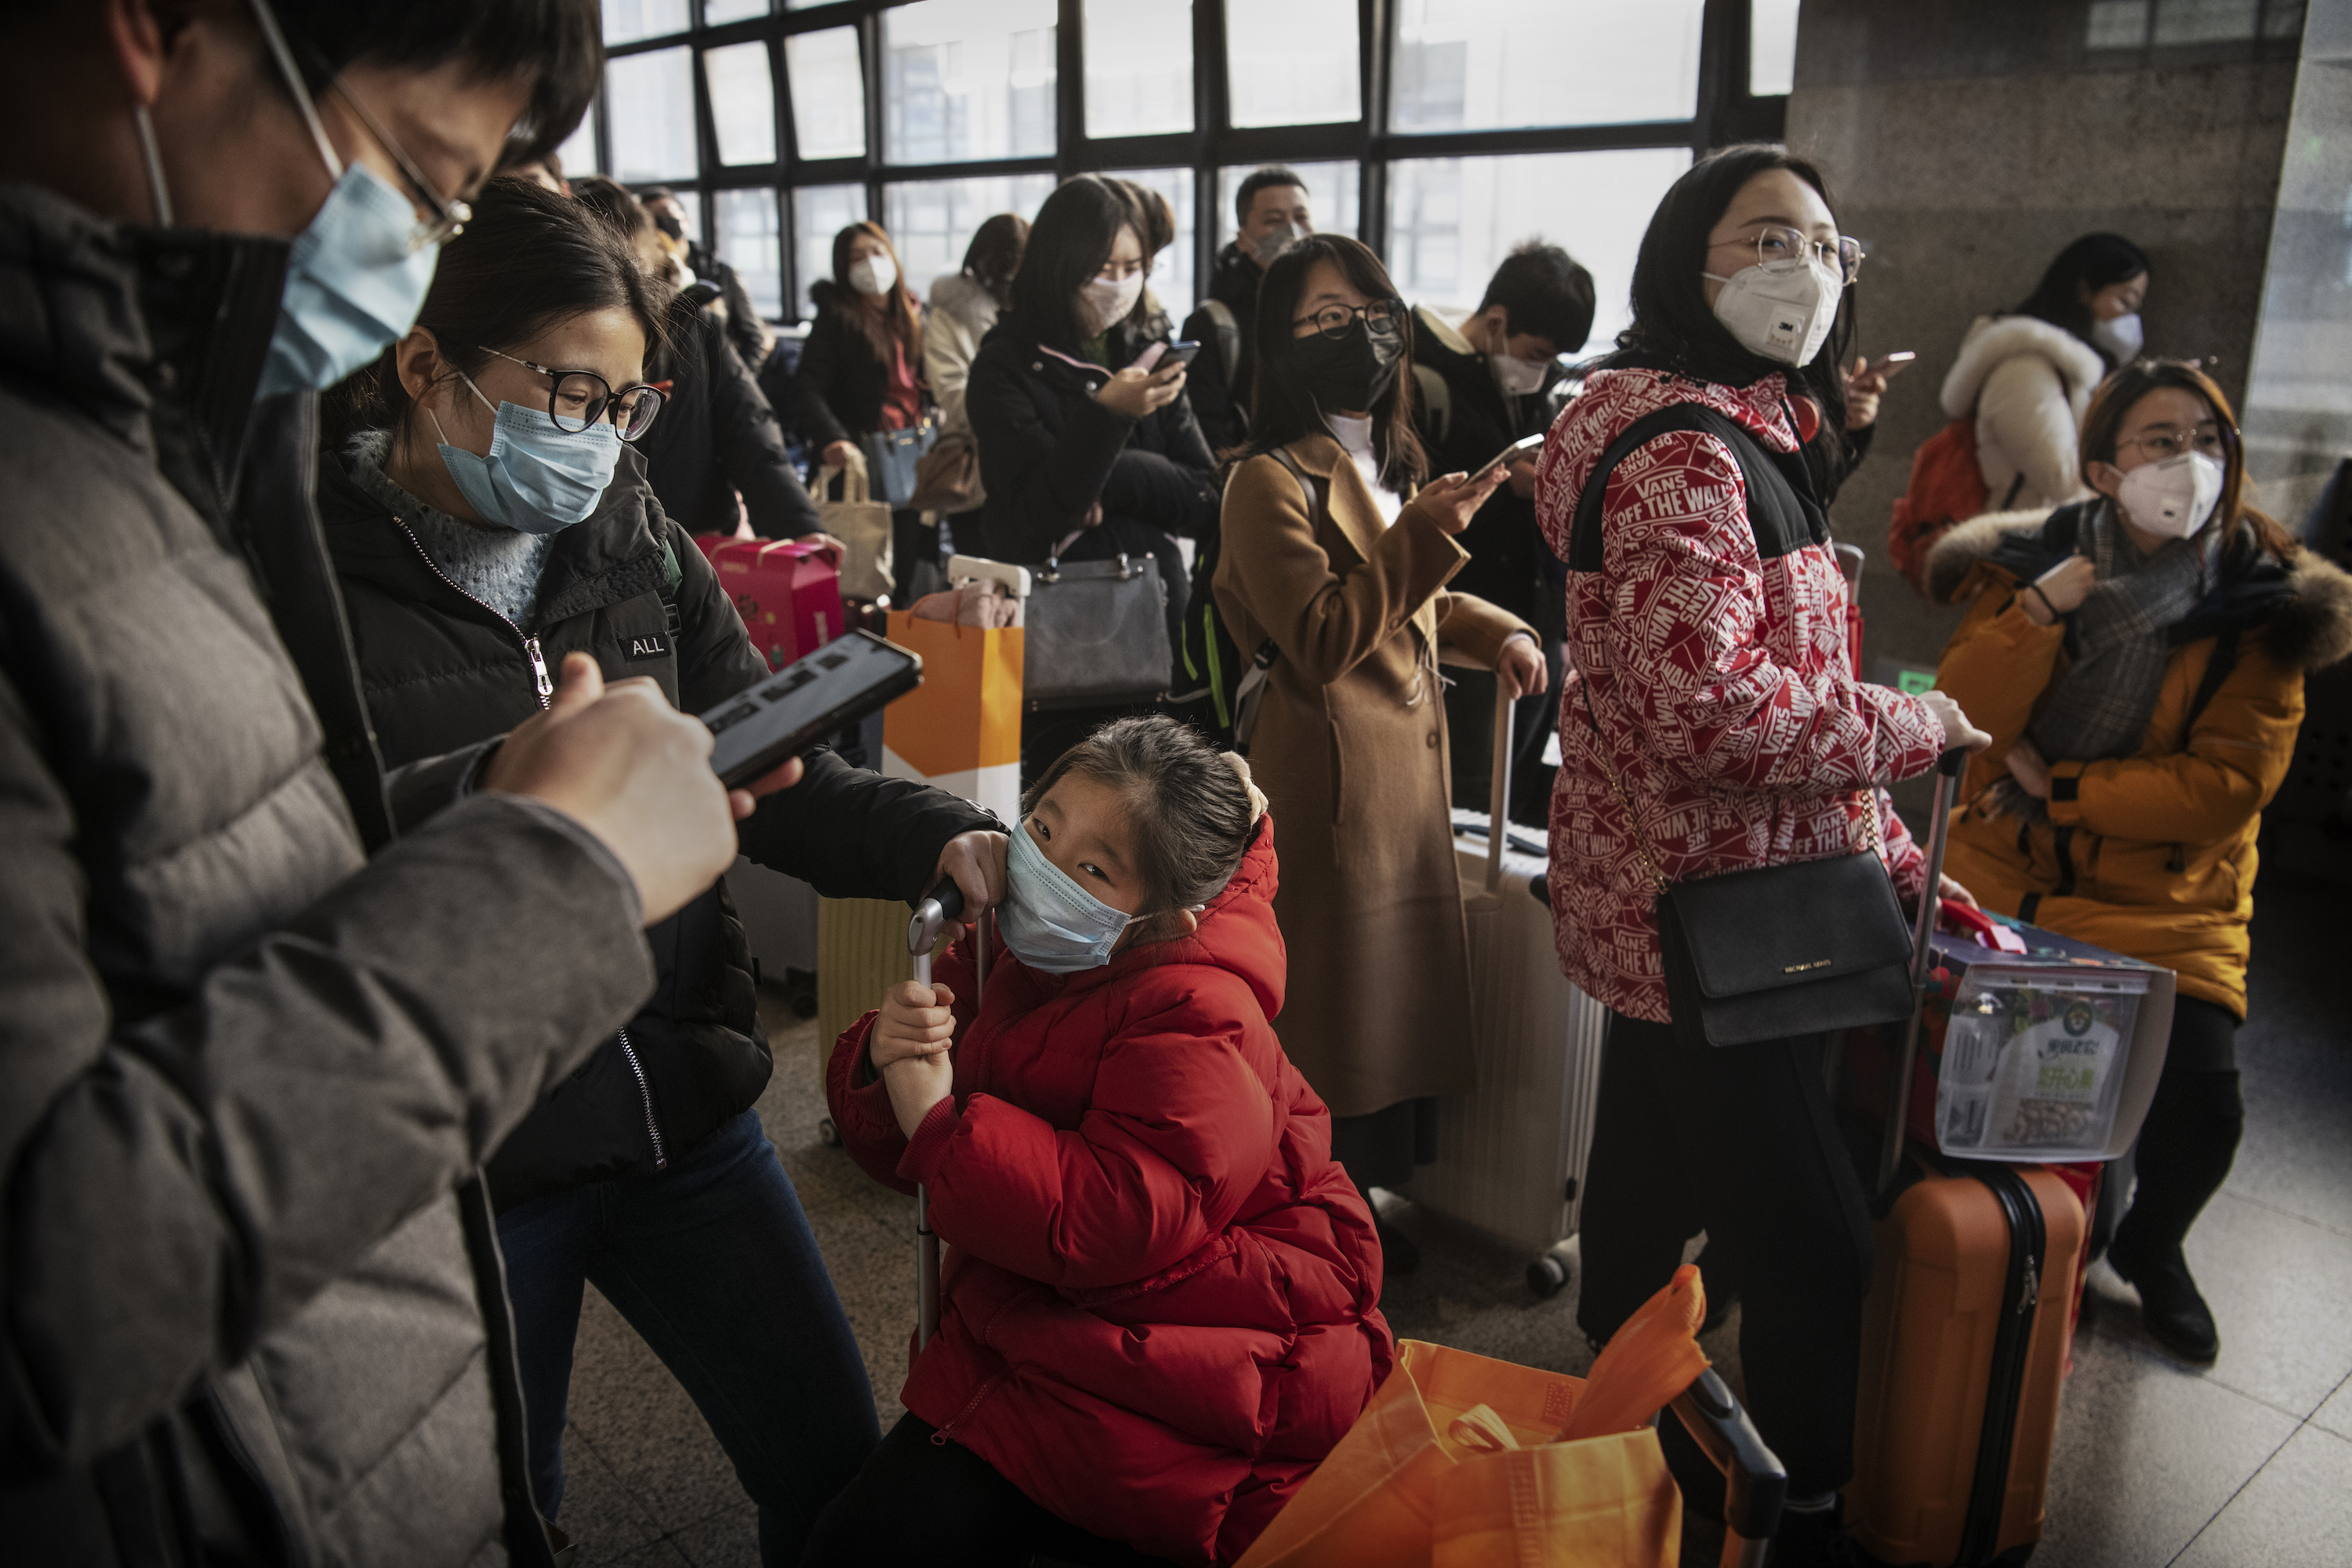 Chinese Viral Outbreak Could Be '10 Times the Scale of SARS,' Expert Says